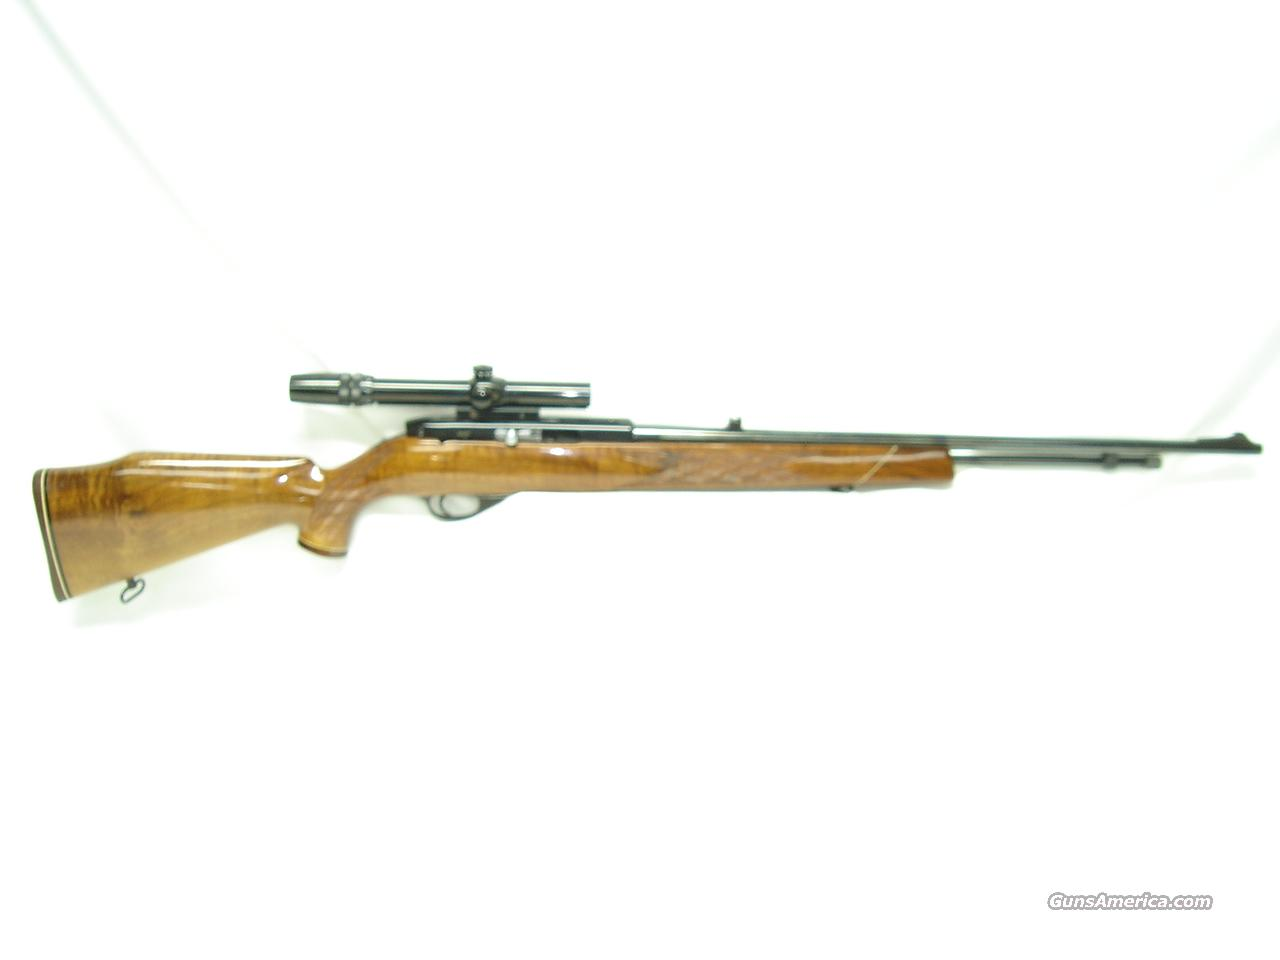 Weatherby Mark XXII Semi-auto Made in Japan Tube Feed  Guns > Rifles > Weatherby Rifles > Sporting